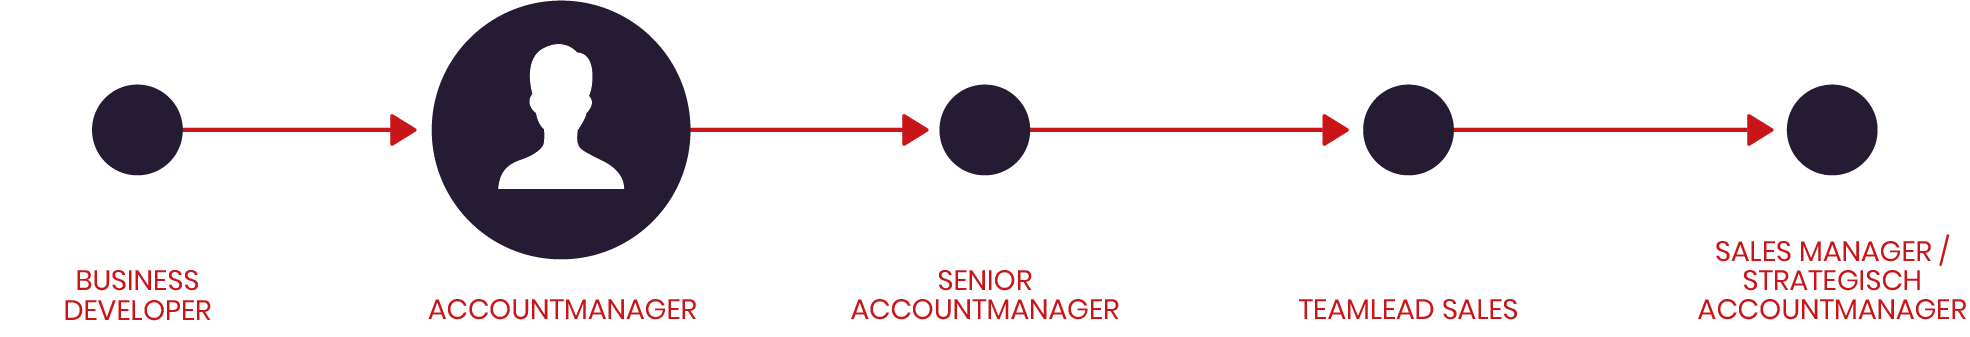 Accountmanager IT